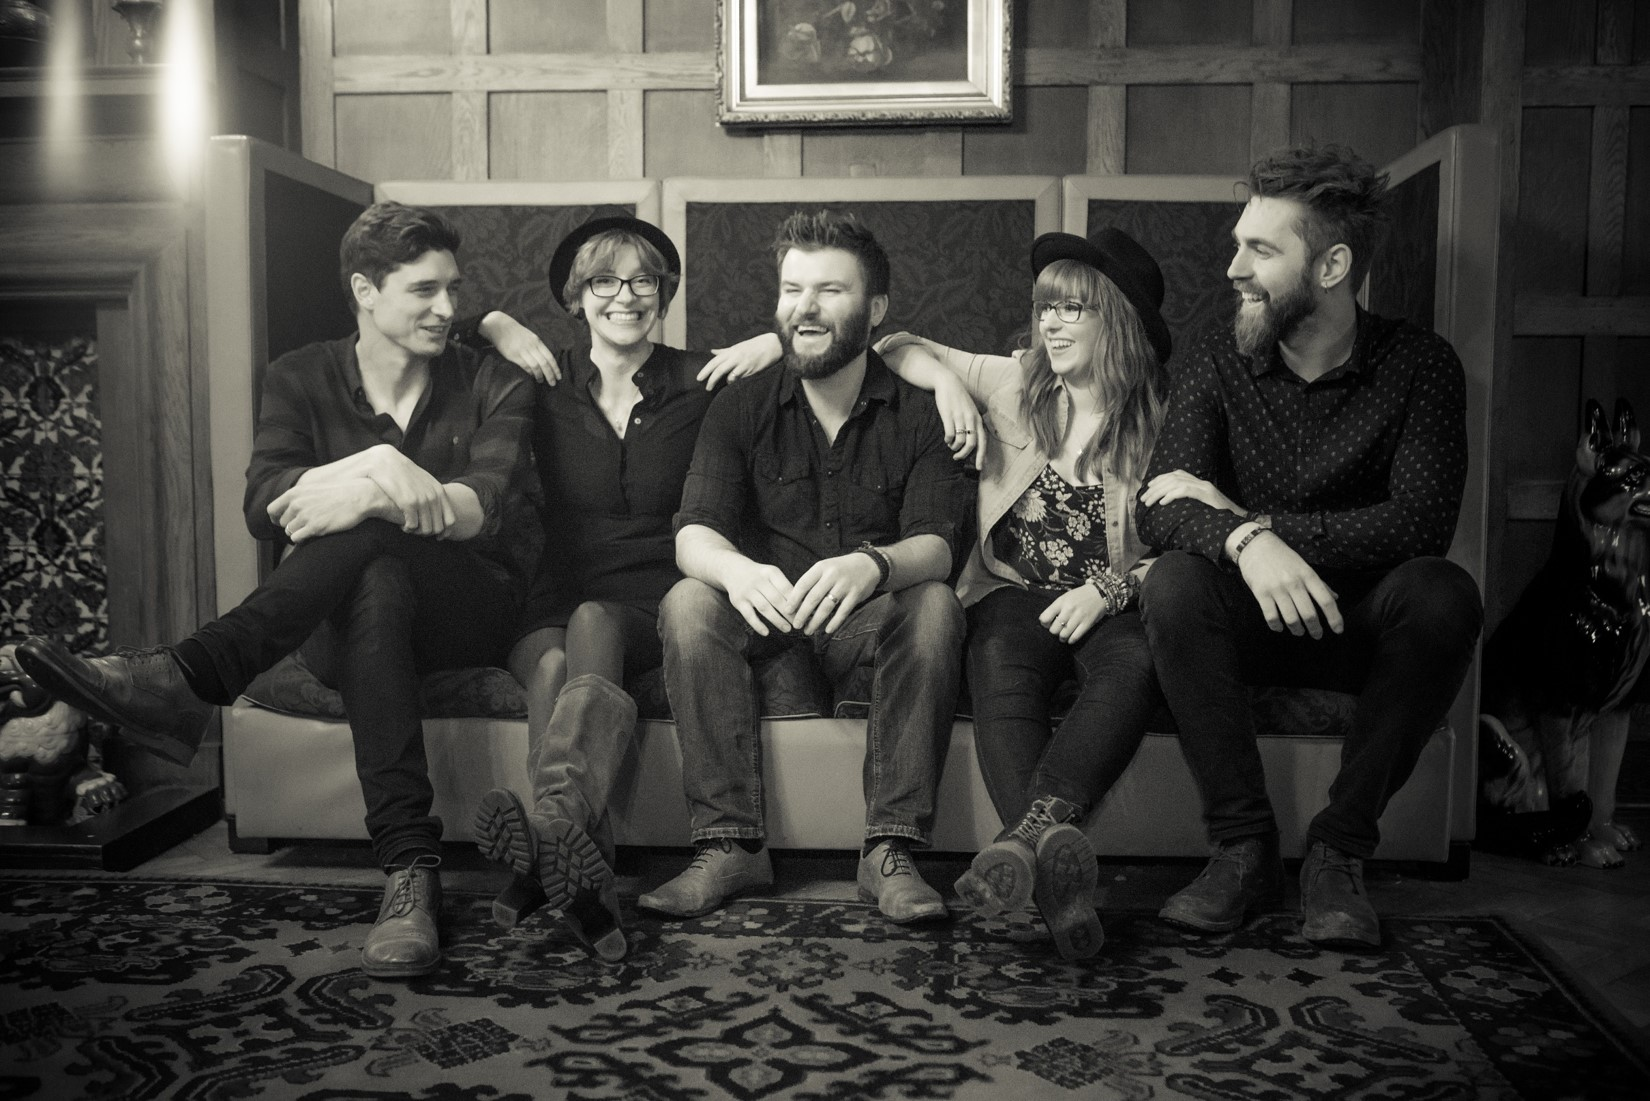 THE ROGUE EMBERS - With a mosaic of high quality musicians and an award winning songwriter under their belt, The Rogue Embers are burning brightly in the current music scene. This is Country Folk with attitude; expect a foot stompin', hand clappin' experience.